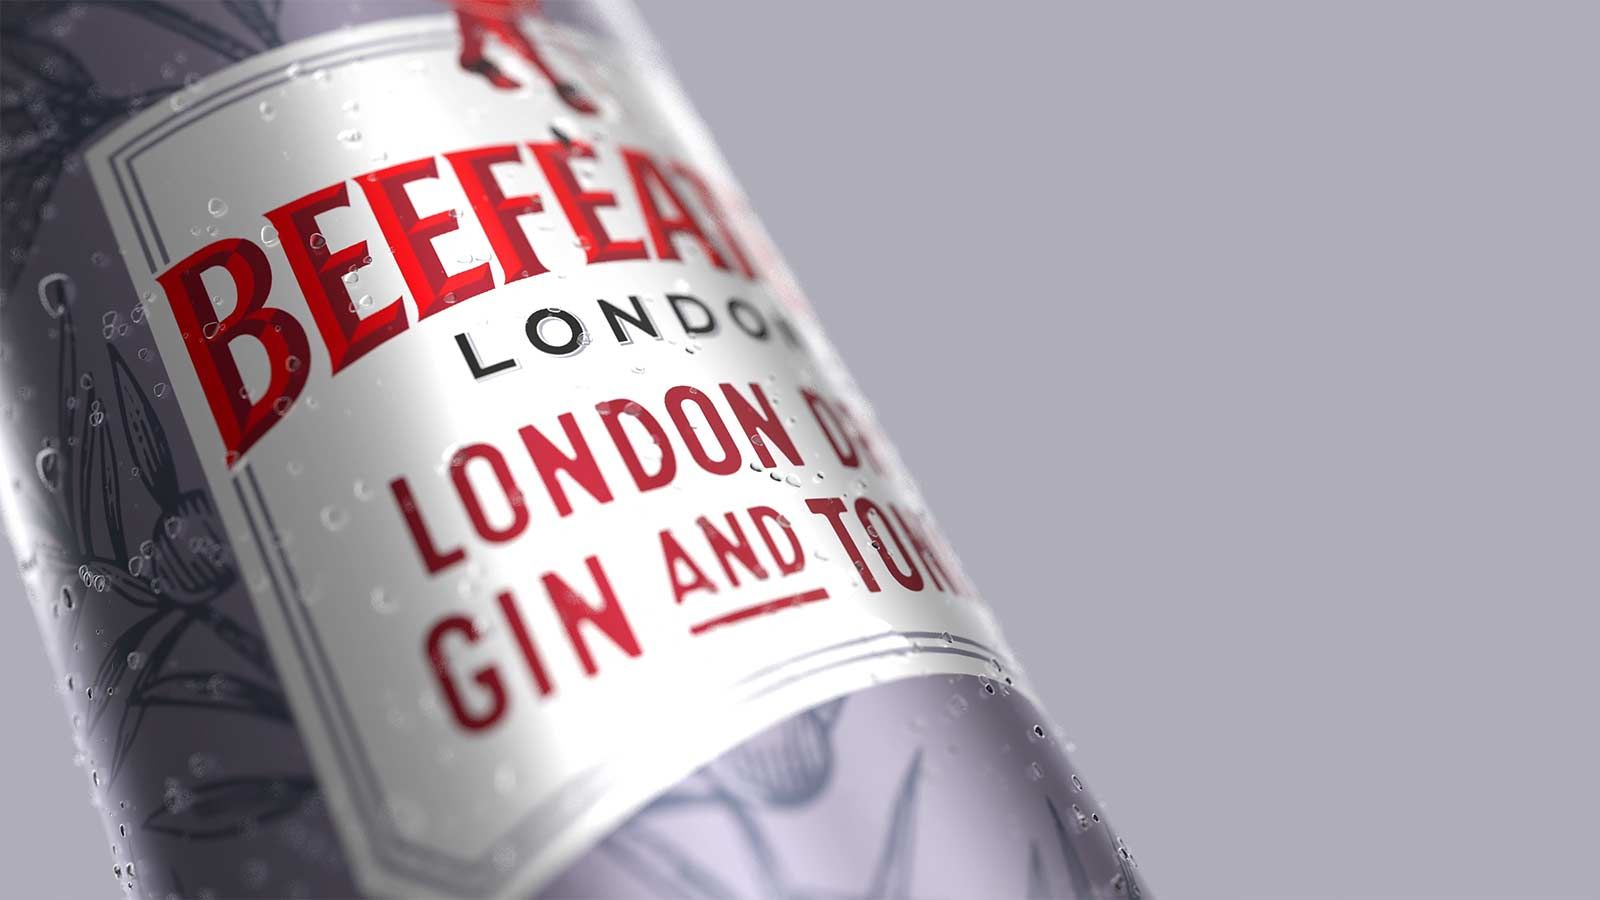 Beefeater can animation frame